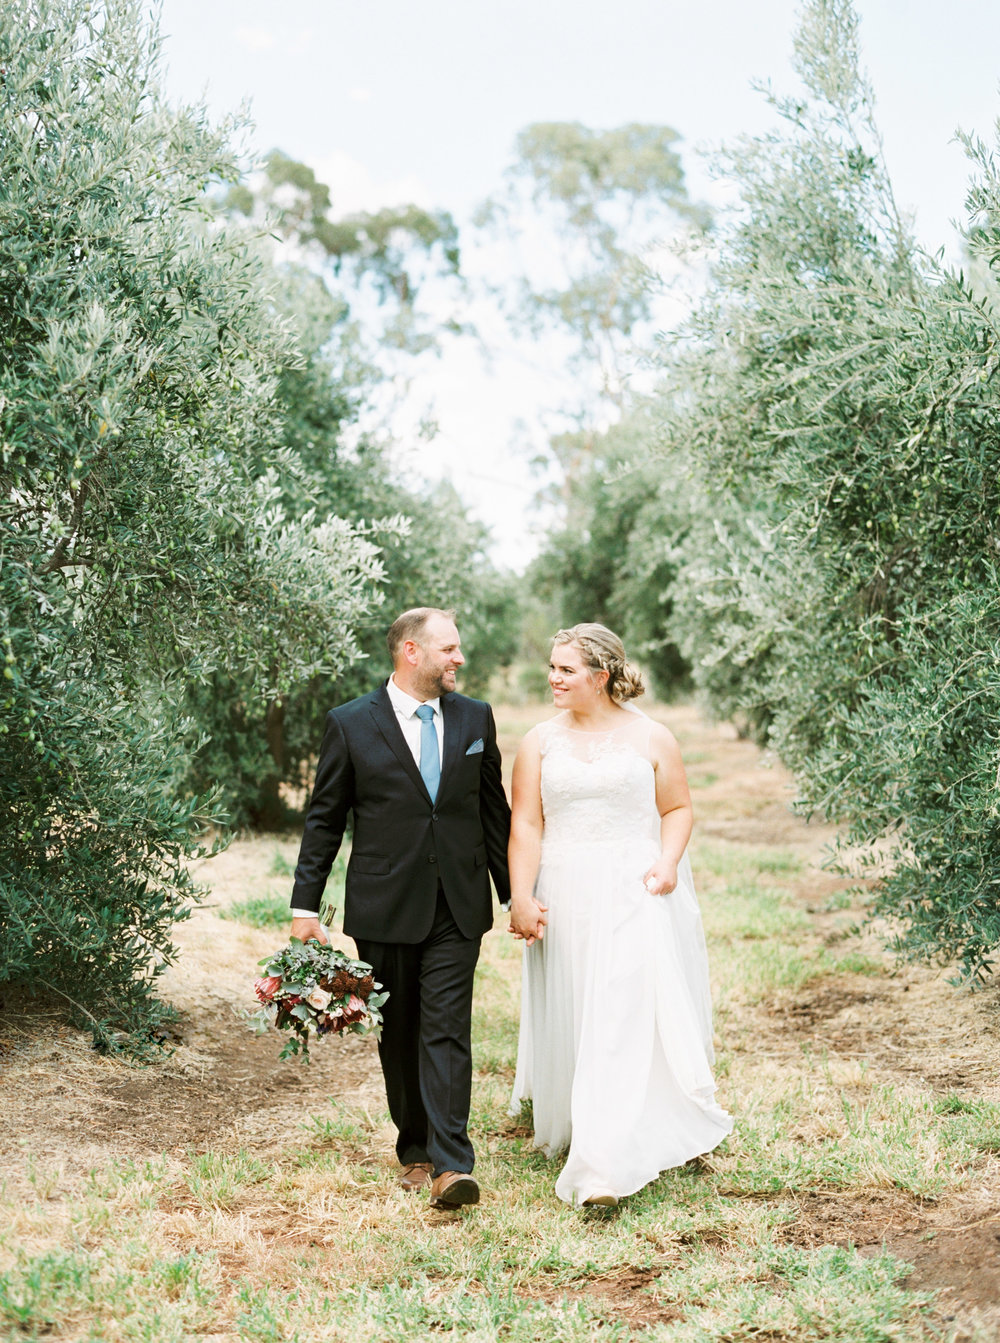 00035- Fine Art Film NSW Mudgee Wedding Photographer Sheri McMahon.jpg